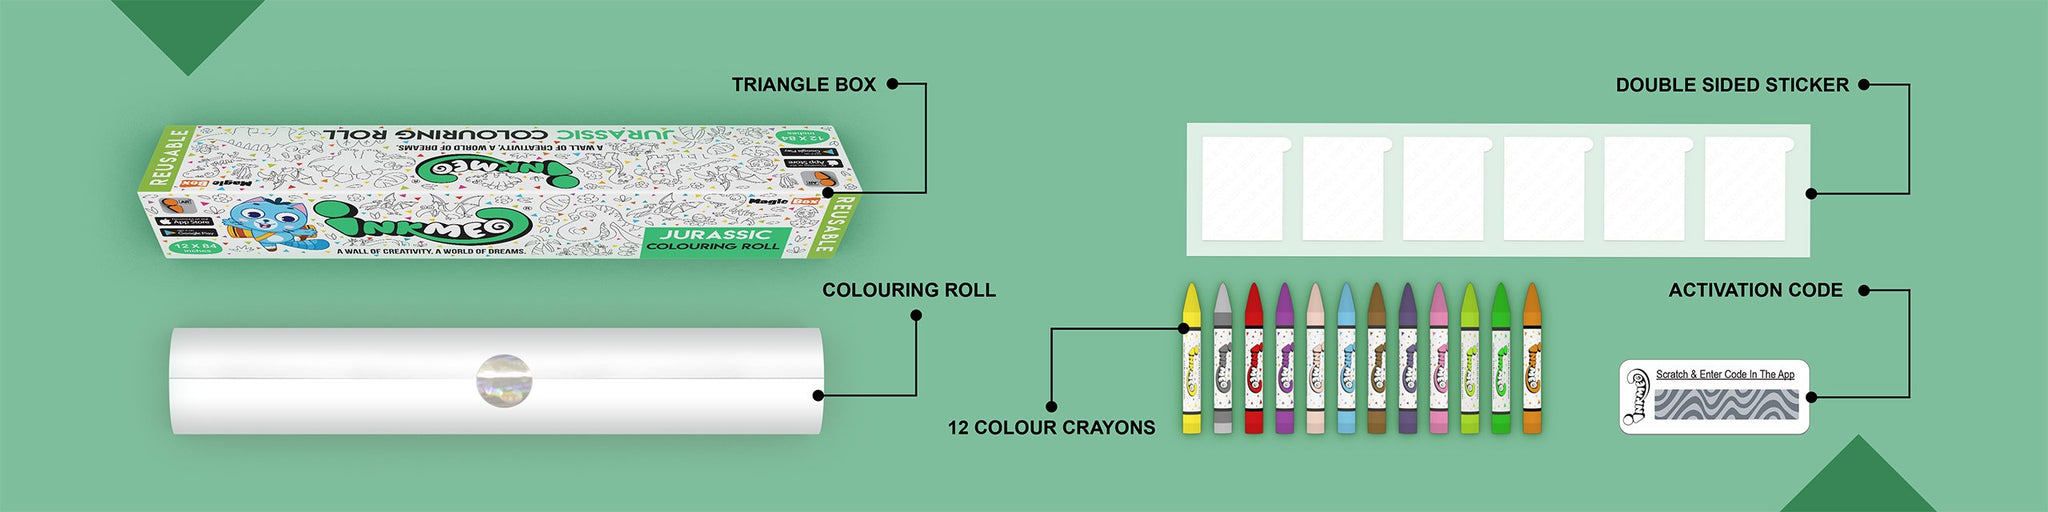 Jurassic Colouring Roll (12 inch) - Inkmeo